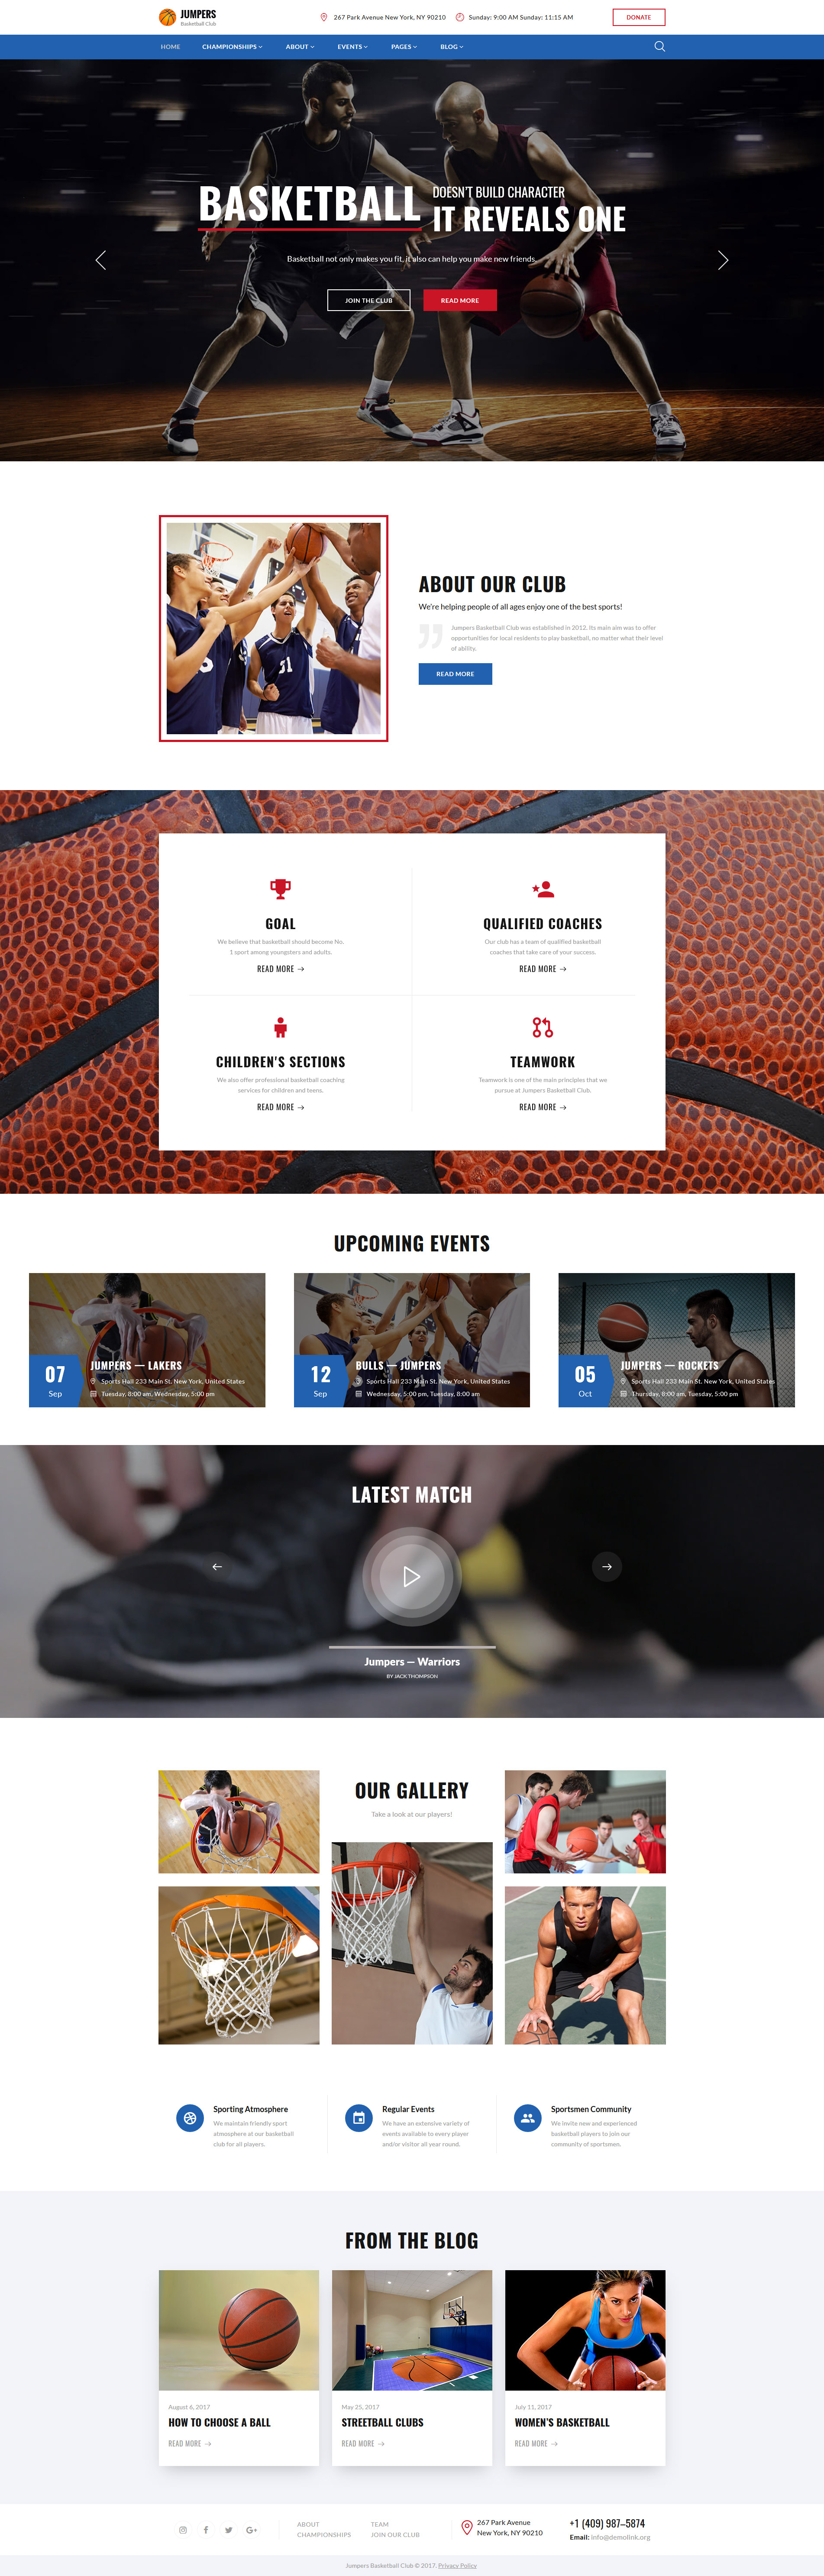 Jumpers - Basketball Club Responsive Multipage Website Template - screenshot